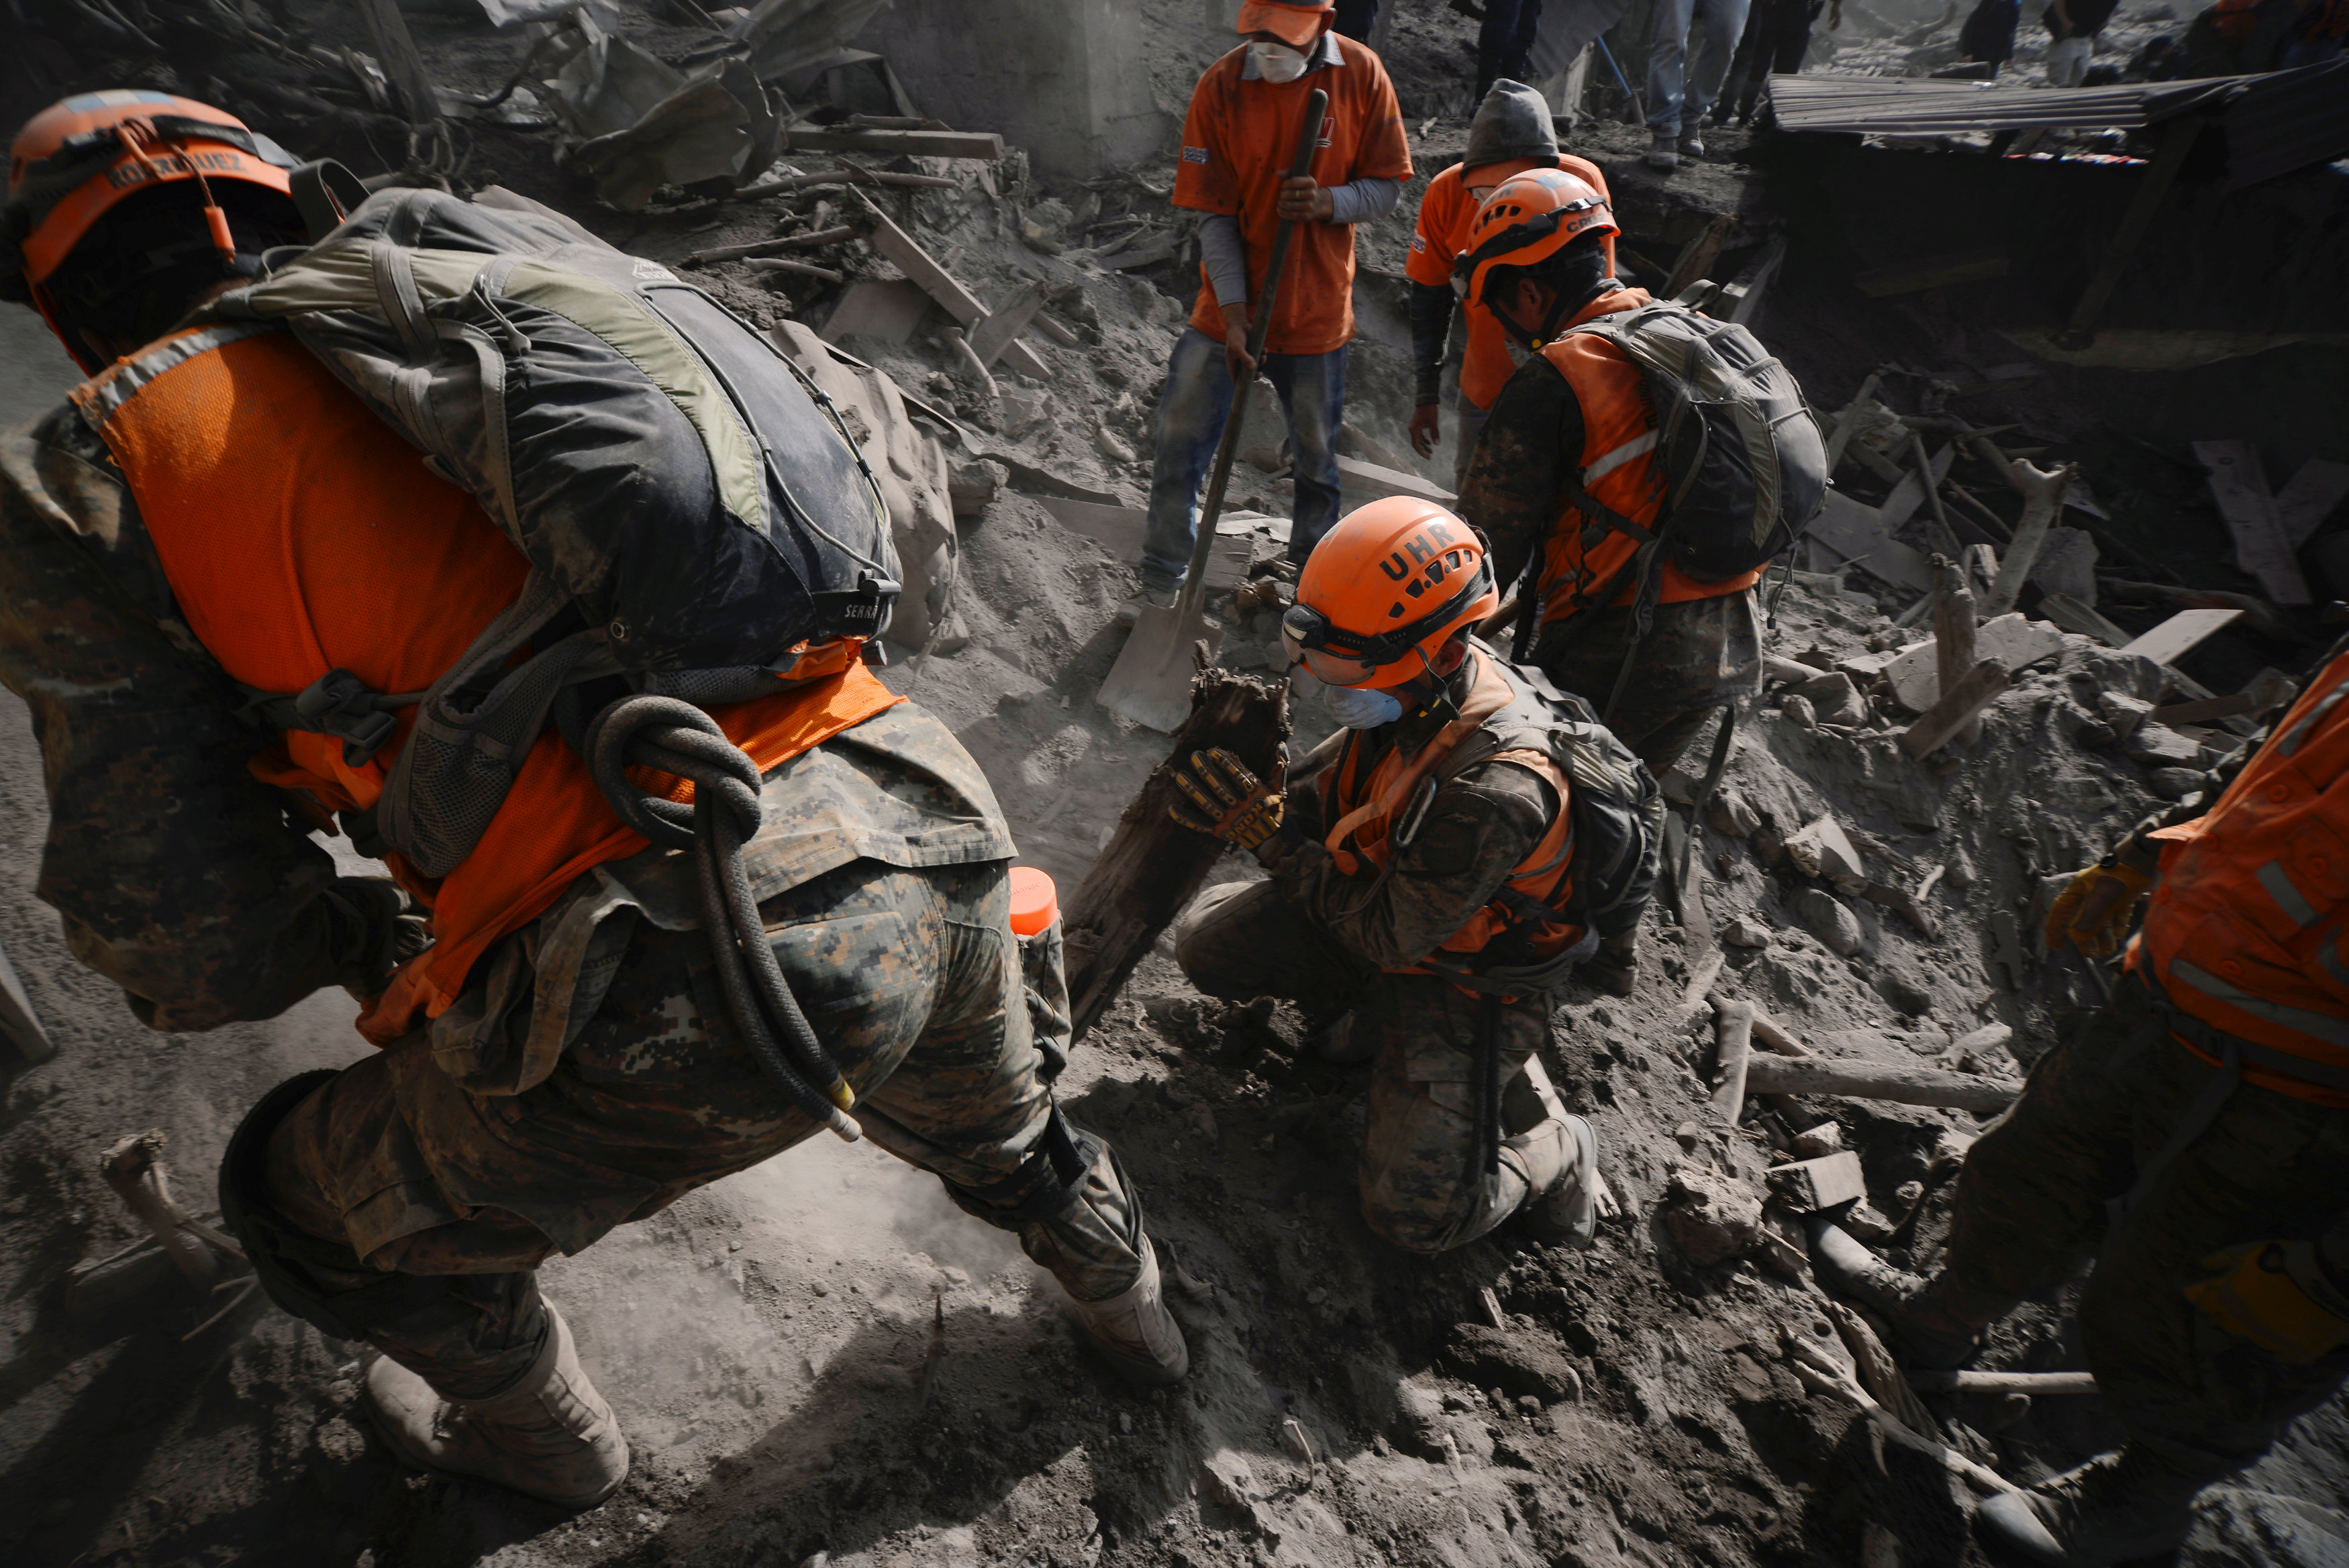 Soldiers search for remains at an area affected by the eruption of the Fuego volcano at El Rodeo in Escuintla, Guatemala June 6, 2018. REUTERS/Fabricio Alonzo